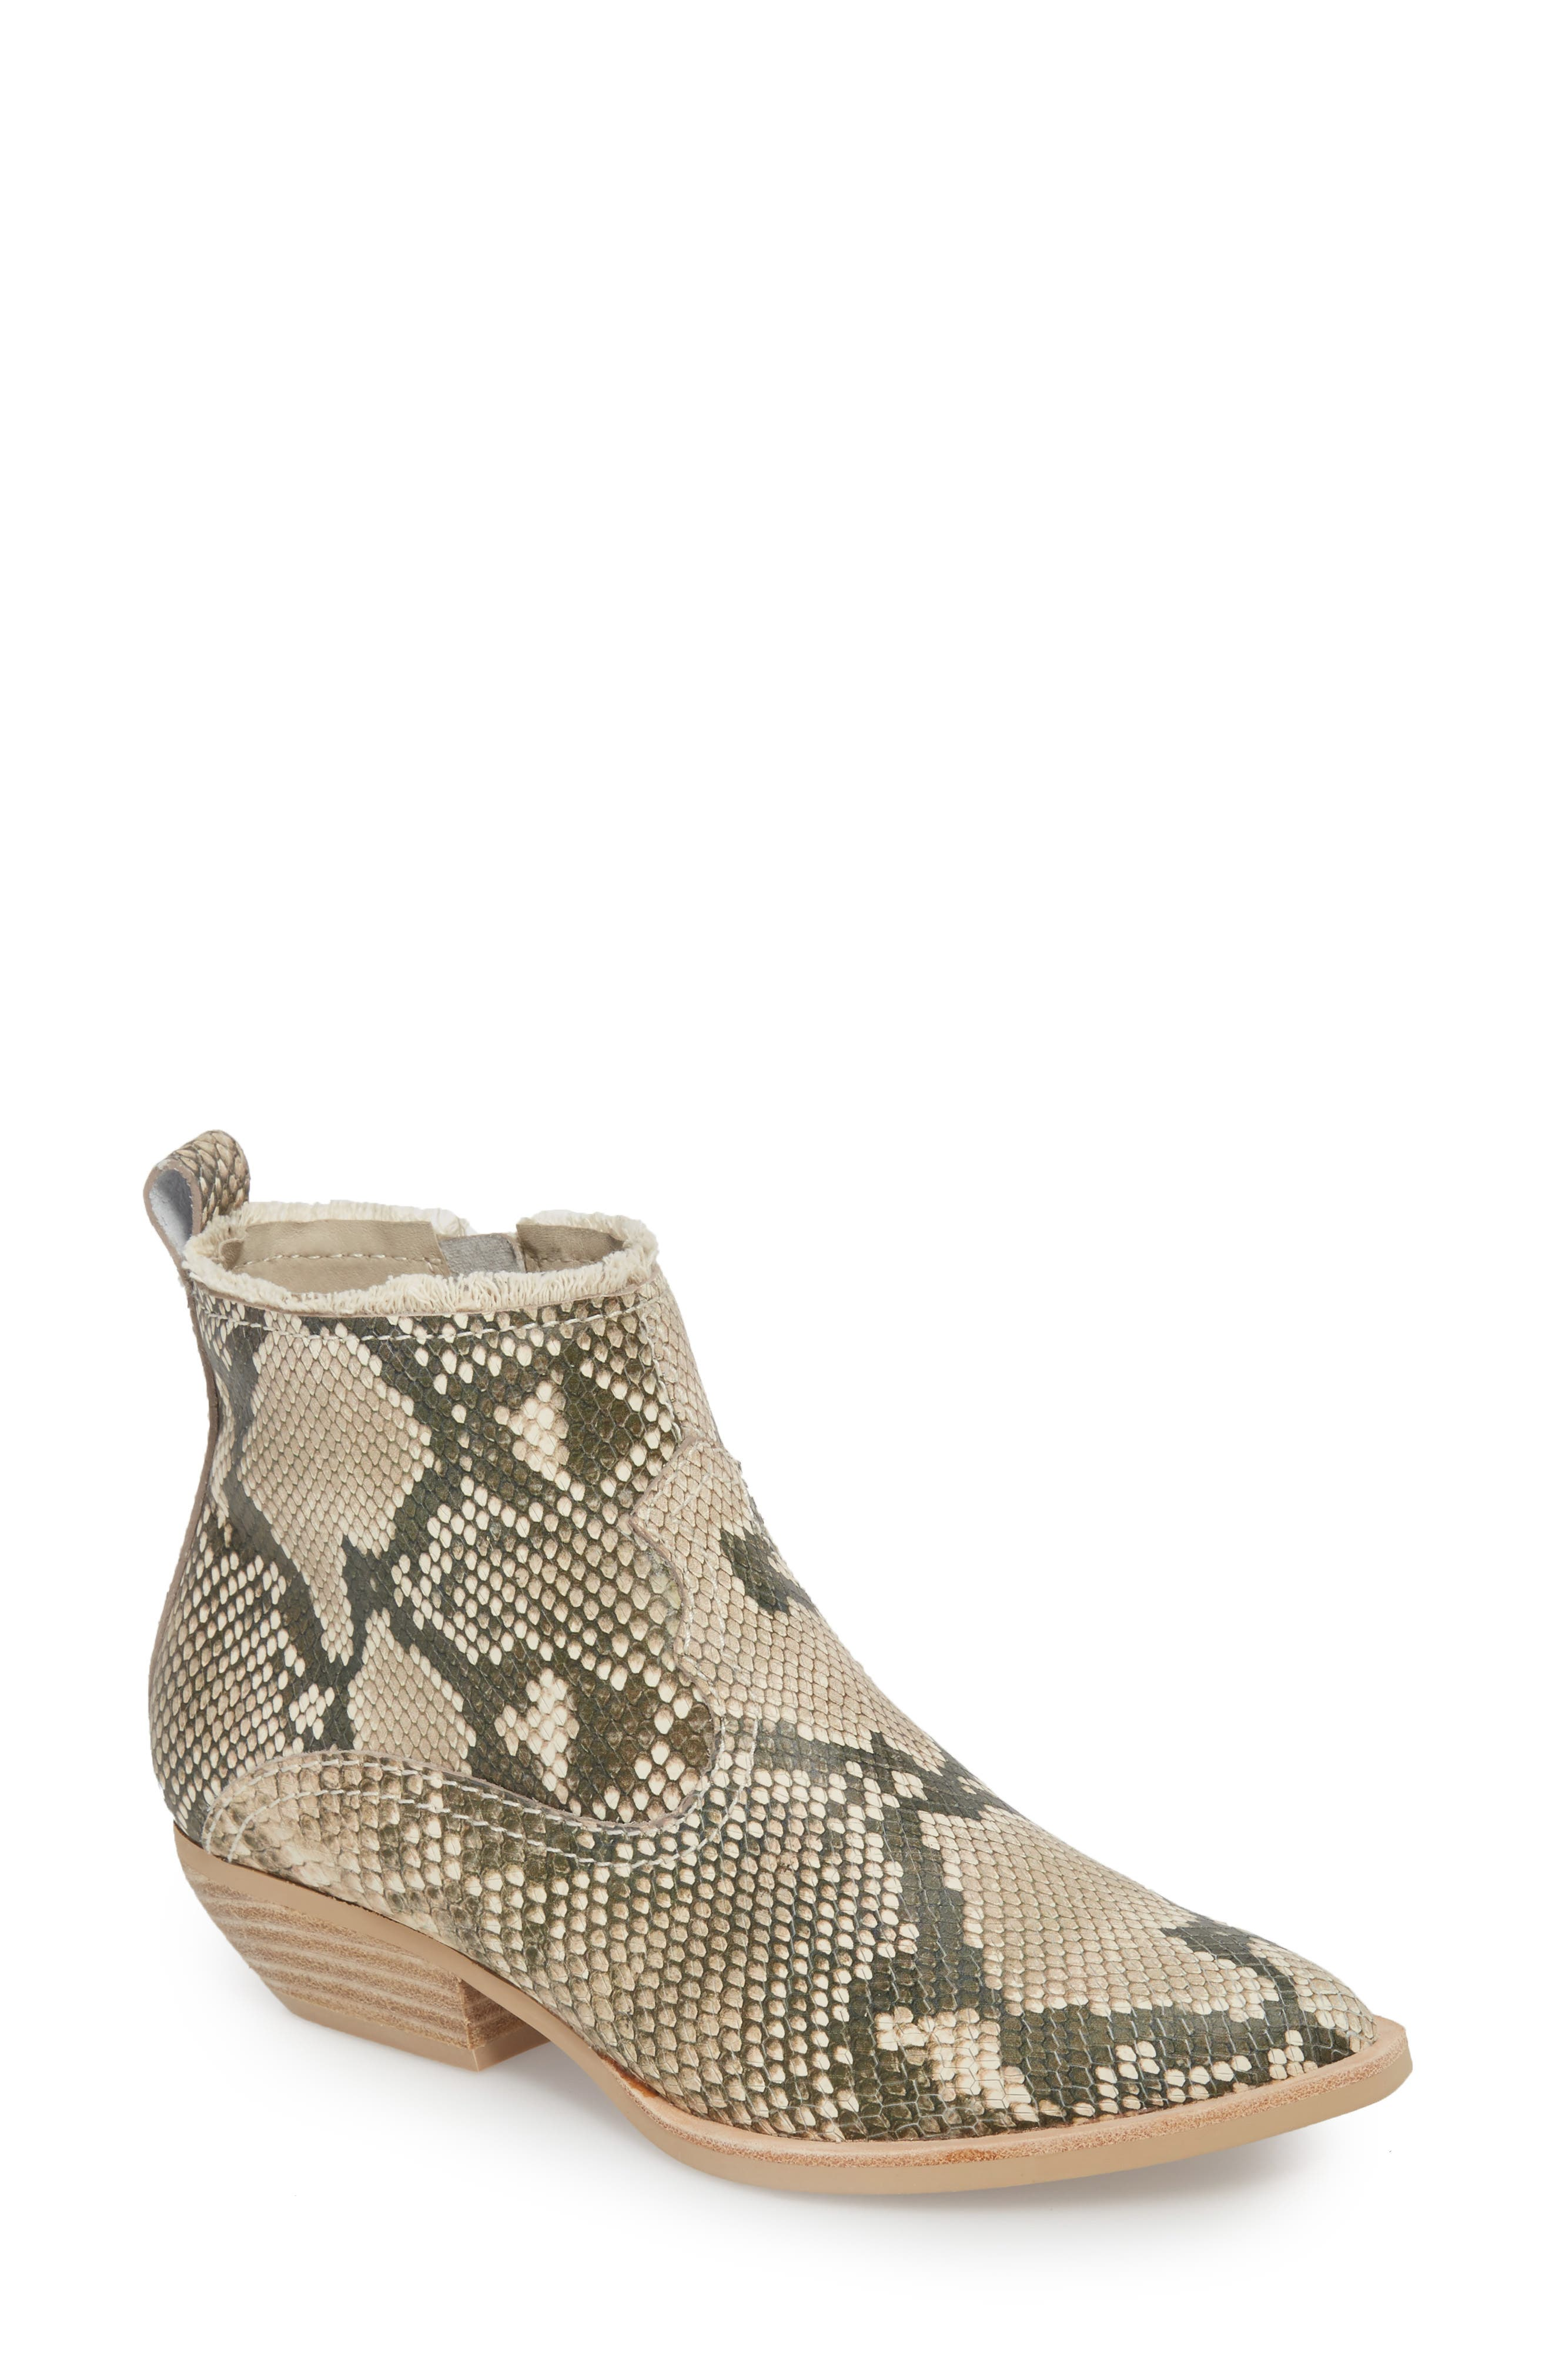 Unity Bootie,                         Main,                         color, SNAKE